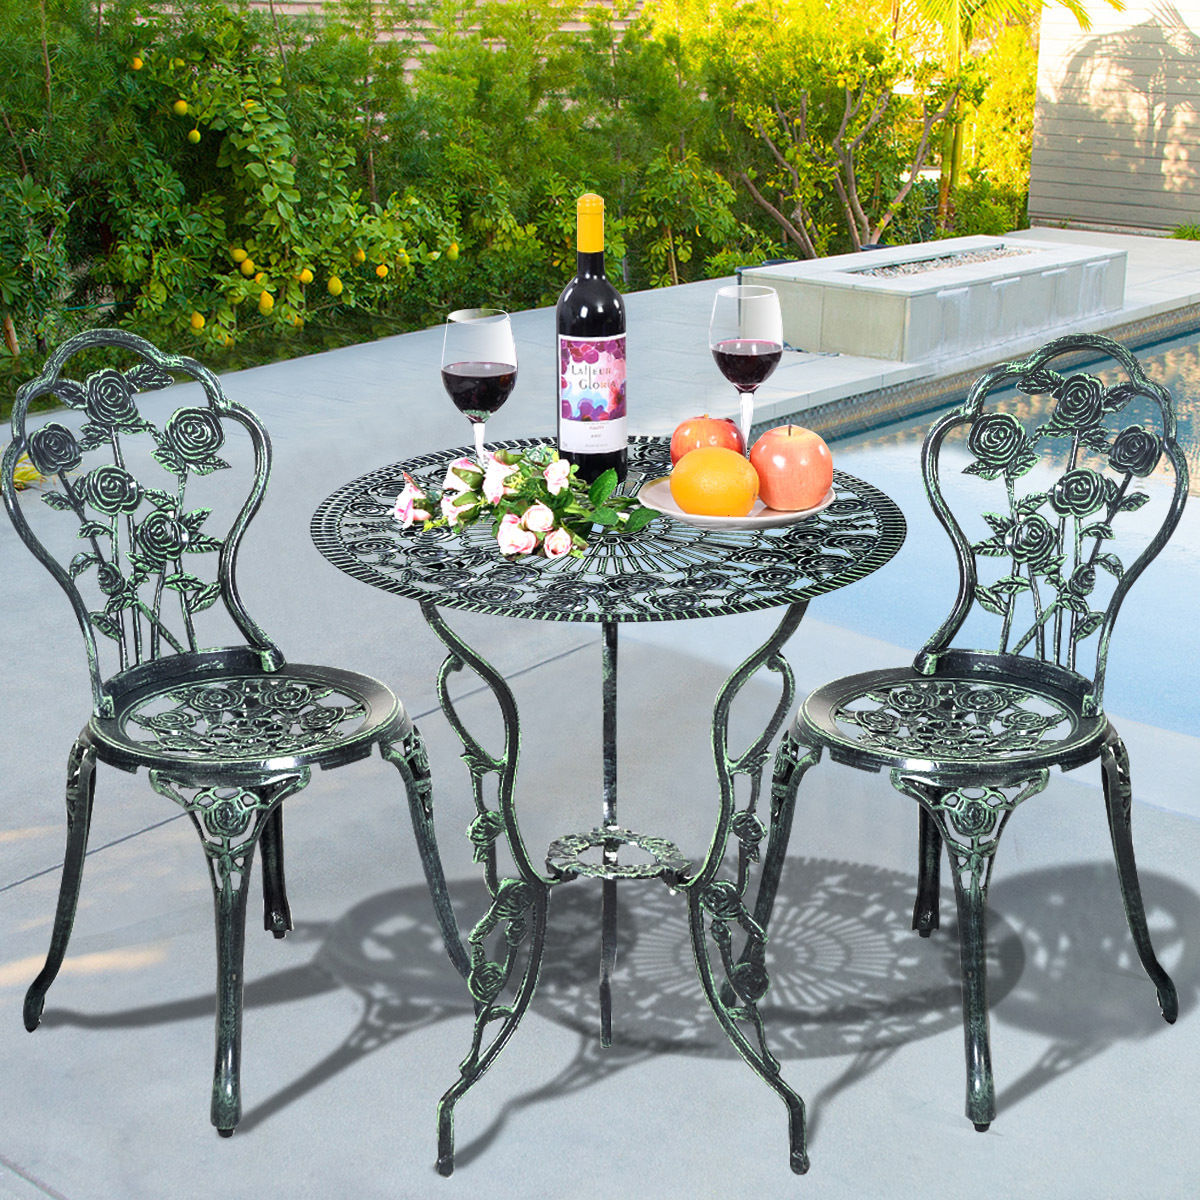 Costway Rose Design Cast Aluminum Outdoor 3 Piece Outdoor Bistro Set